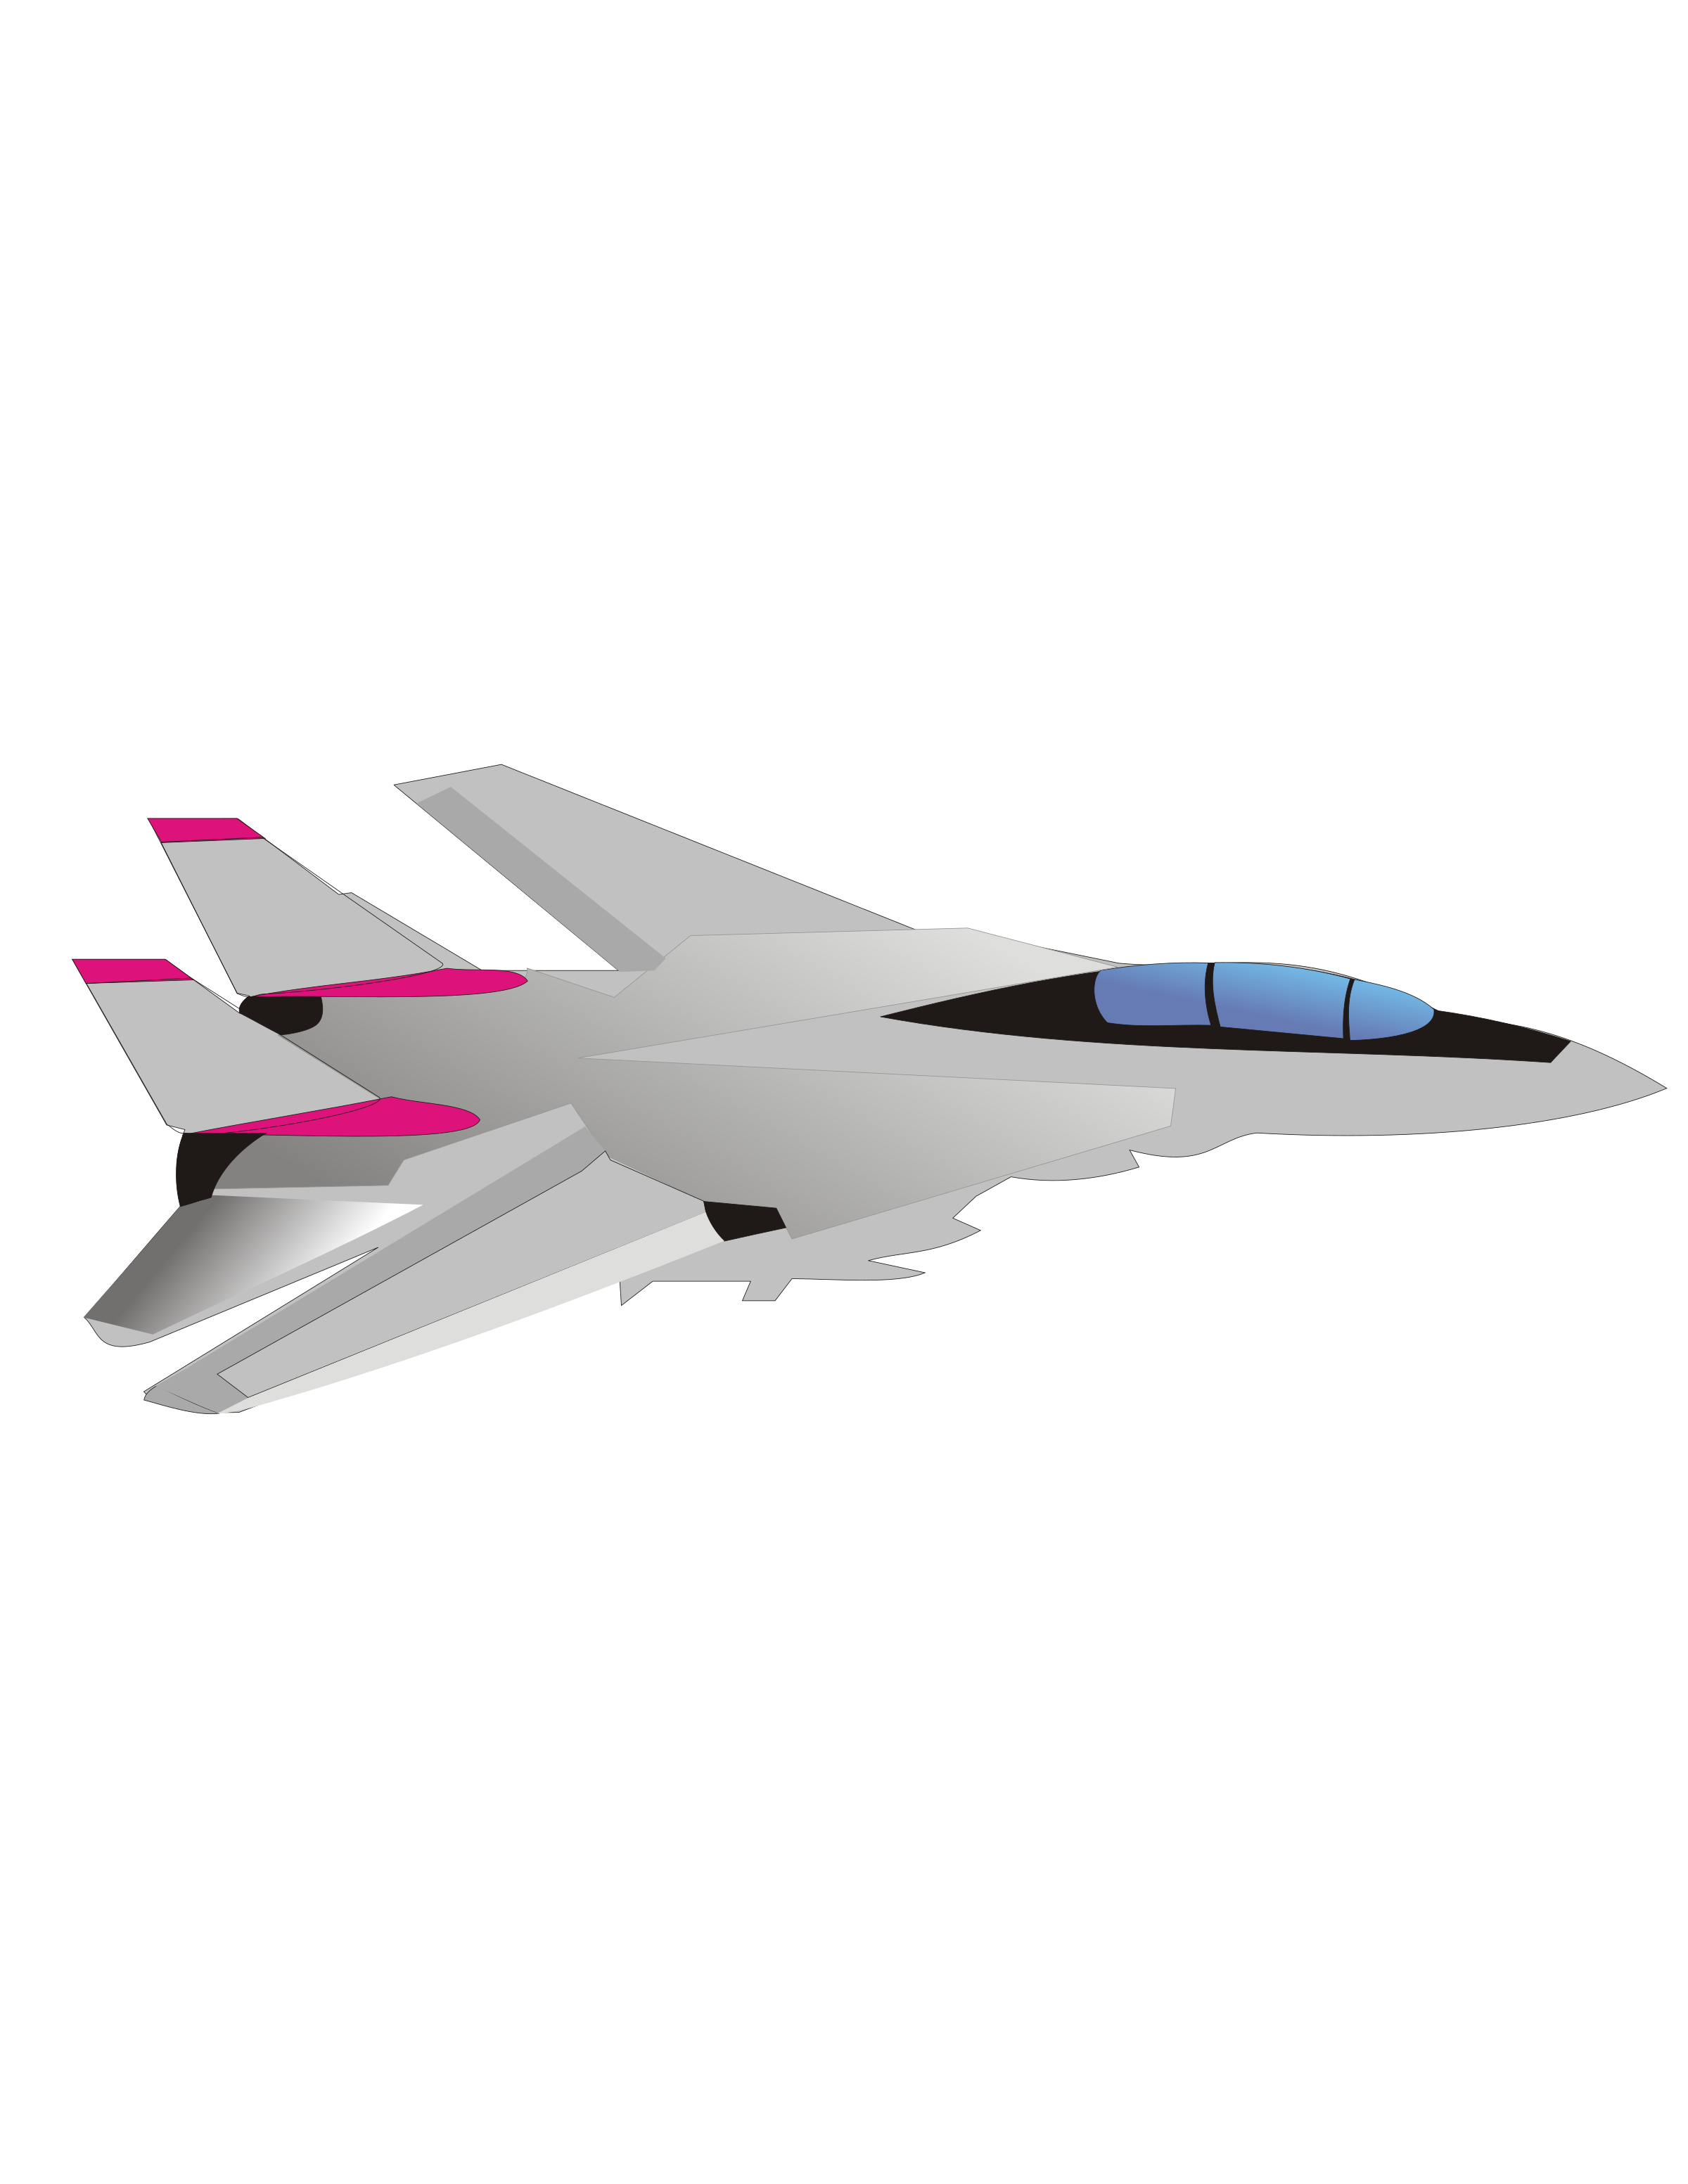 F14 Tomcat Fighter Jet by simatic